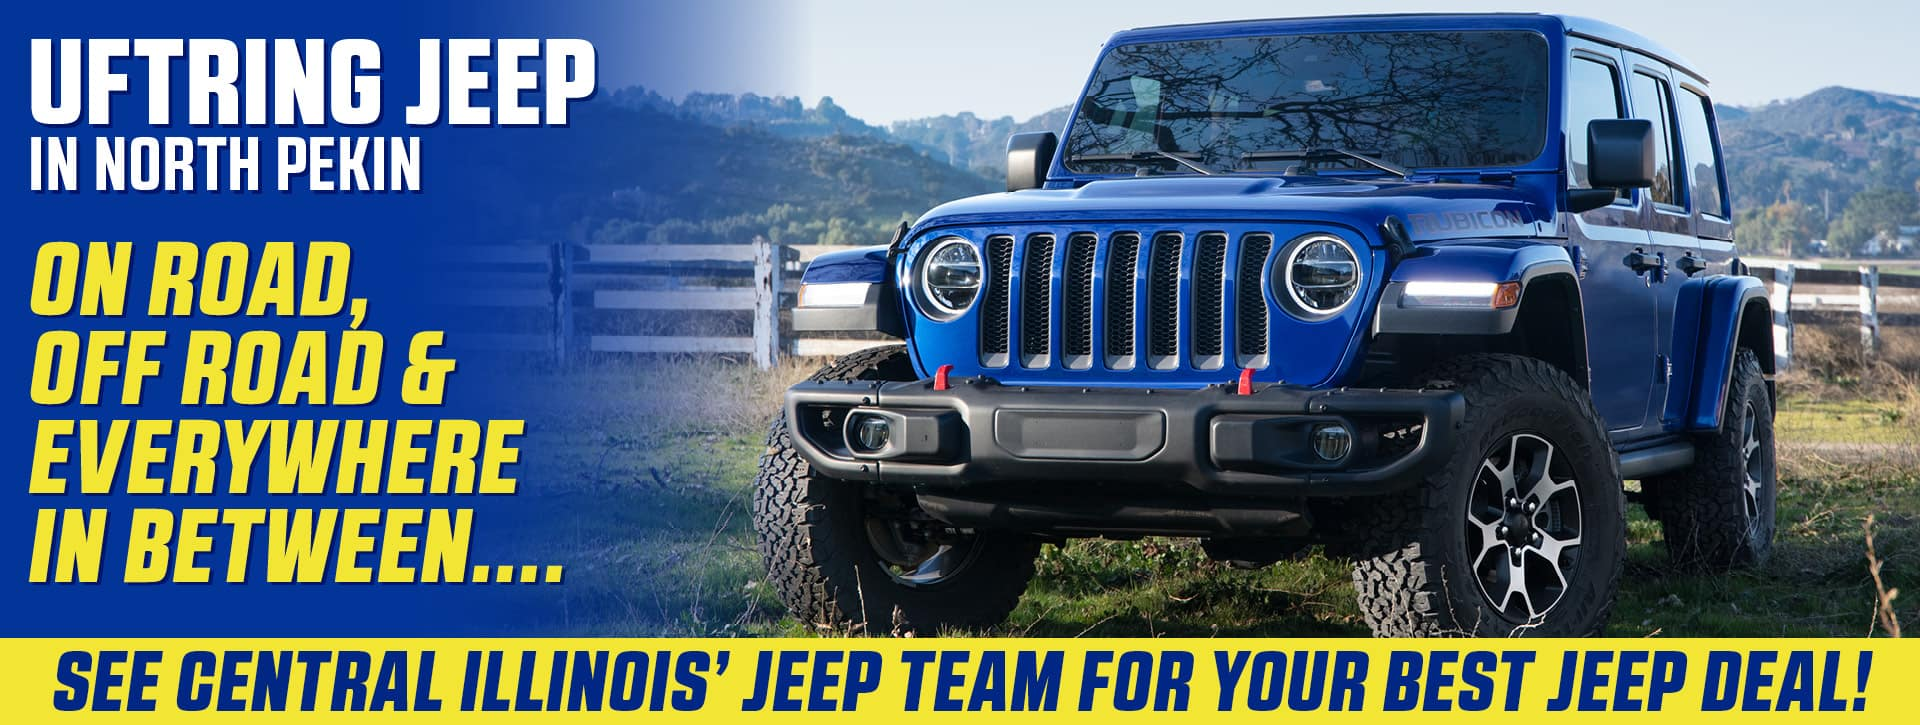 UP Web Banner JEEPS 1.29.21